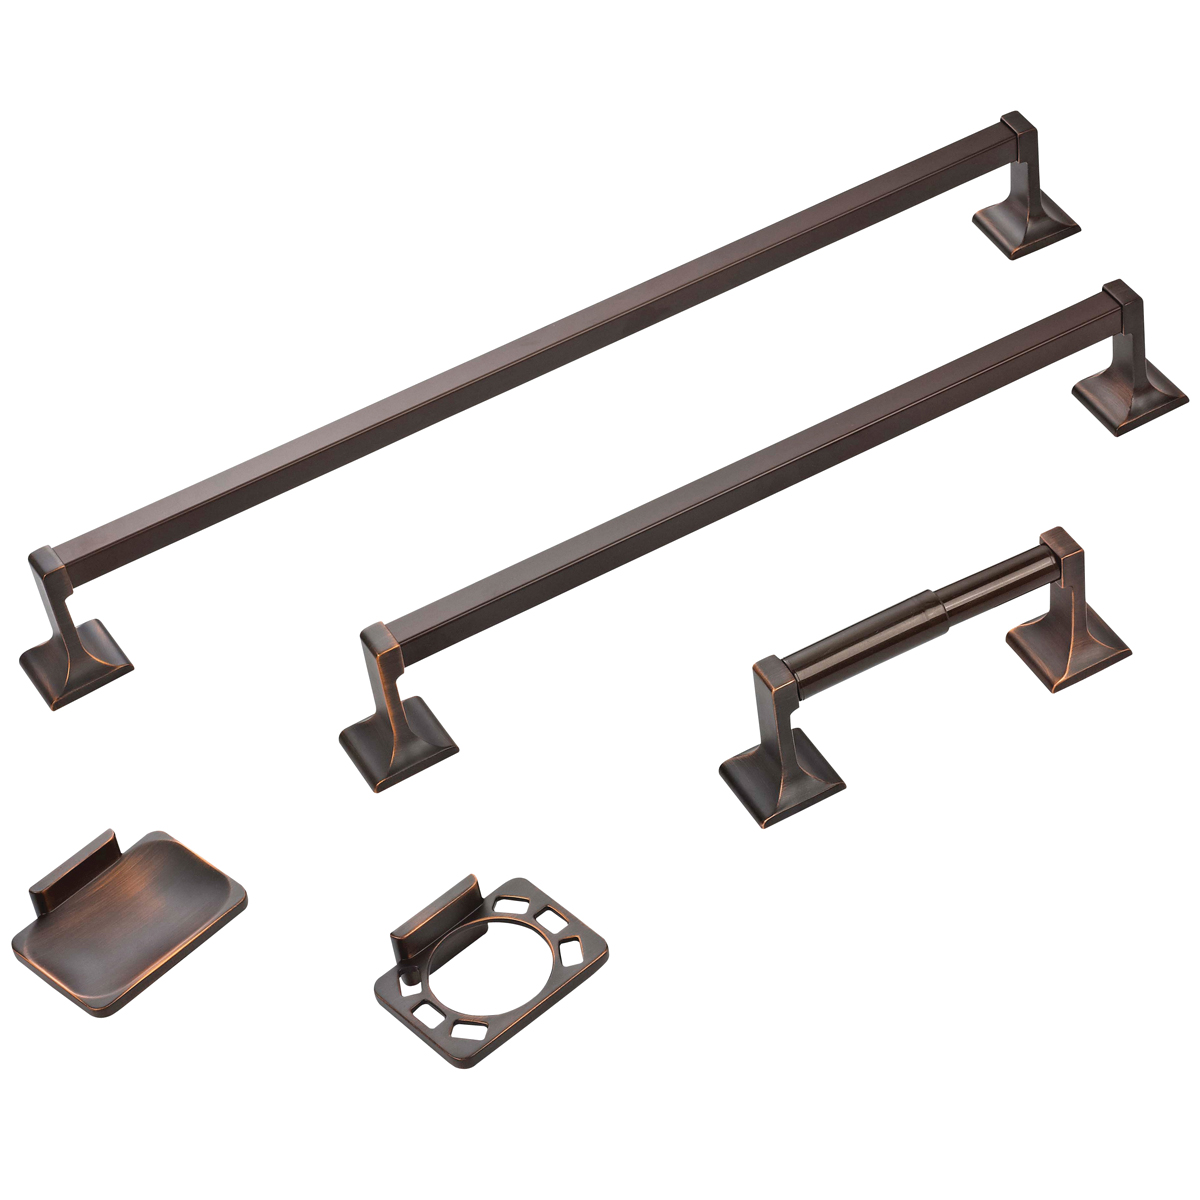 Picture of Boston Harbor 07-SOU-VB Bathroom Accessory Set, Venetian Bronze, Venetian Bronze, 5-Piece, For: Bathroom